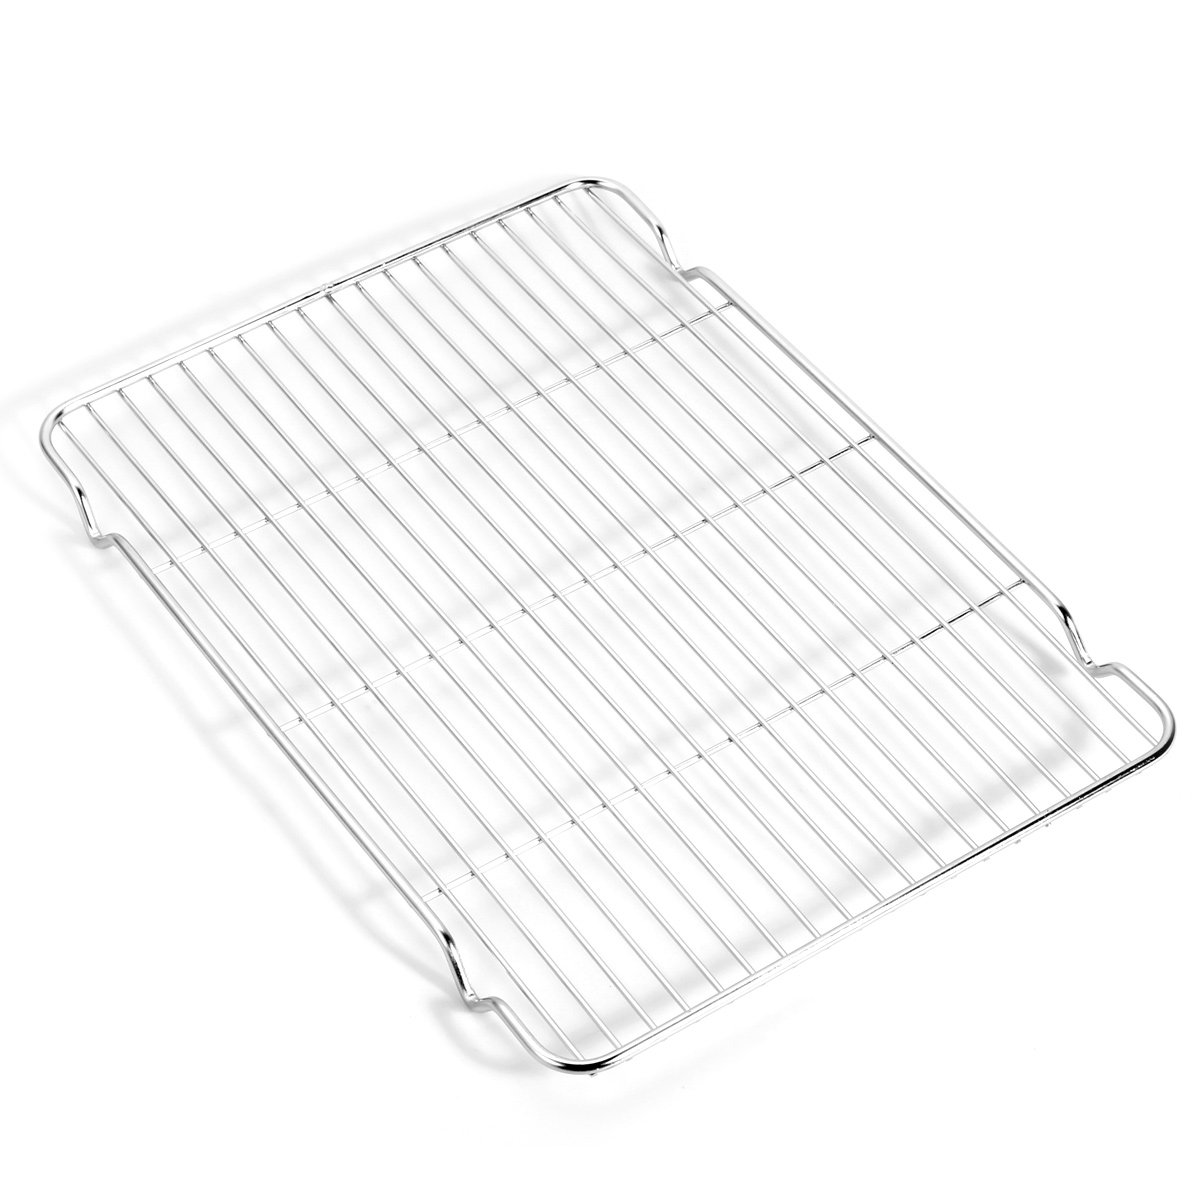 Baking sheets and Rack Set, Zacfton Cookie pan with Nonstick Cooling Rack & Cookie sheets Rectangle Size 12 x 10 x 1 inch,Stainless Steel & Non Toxic & Healthy,Superior Mirror Finish & Easy Clean by Zacfton (Image #5)